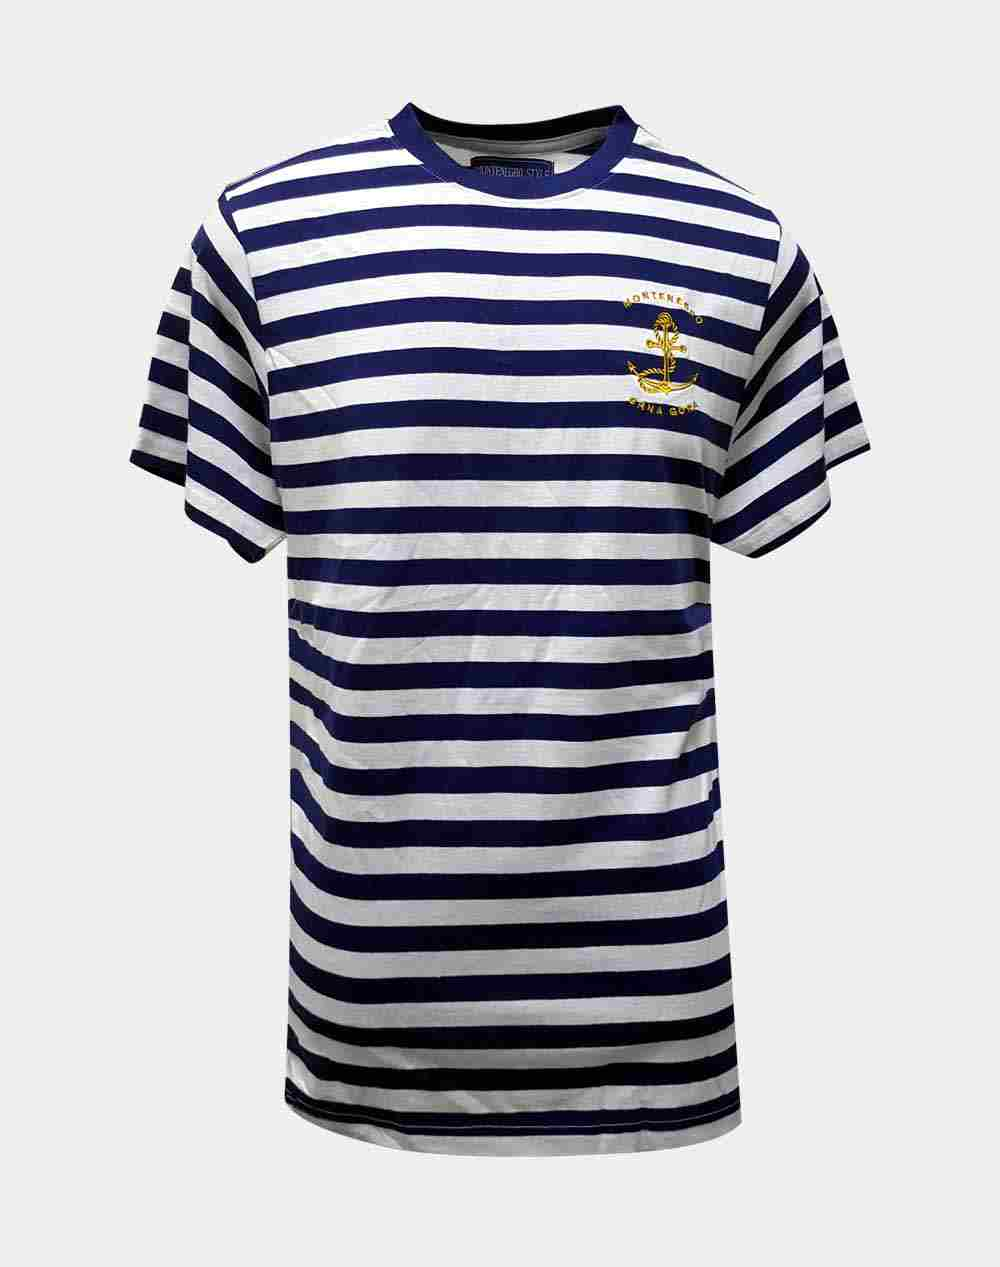 Striped T-Shirts Manufacturer, Wholesale Striped T-Shirts Supplier, Bangladesh, Manufacturer, Supplier, Exporter